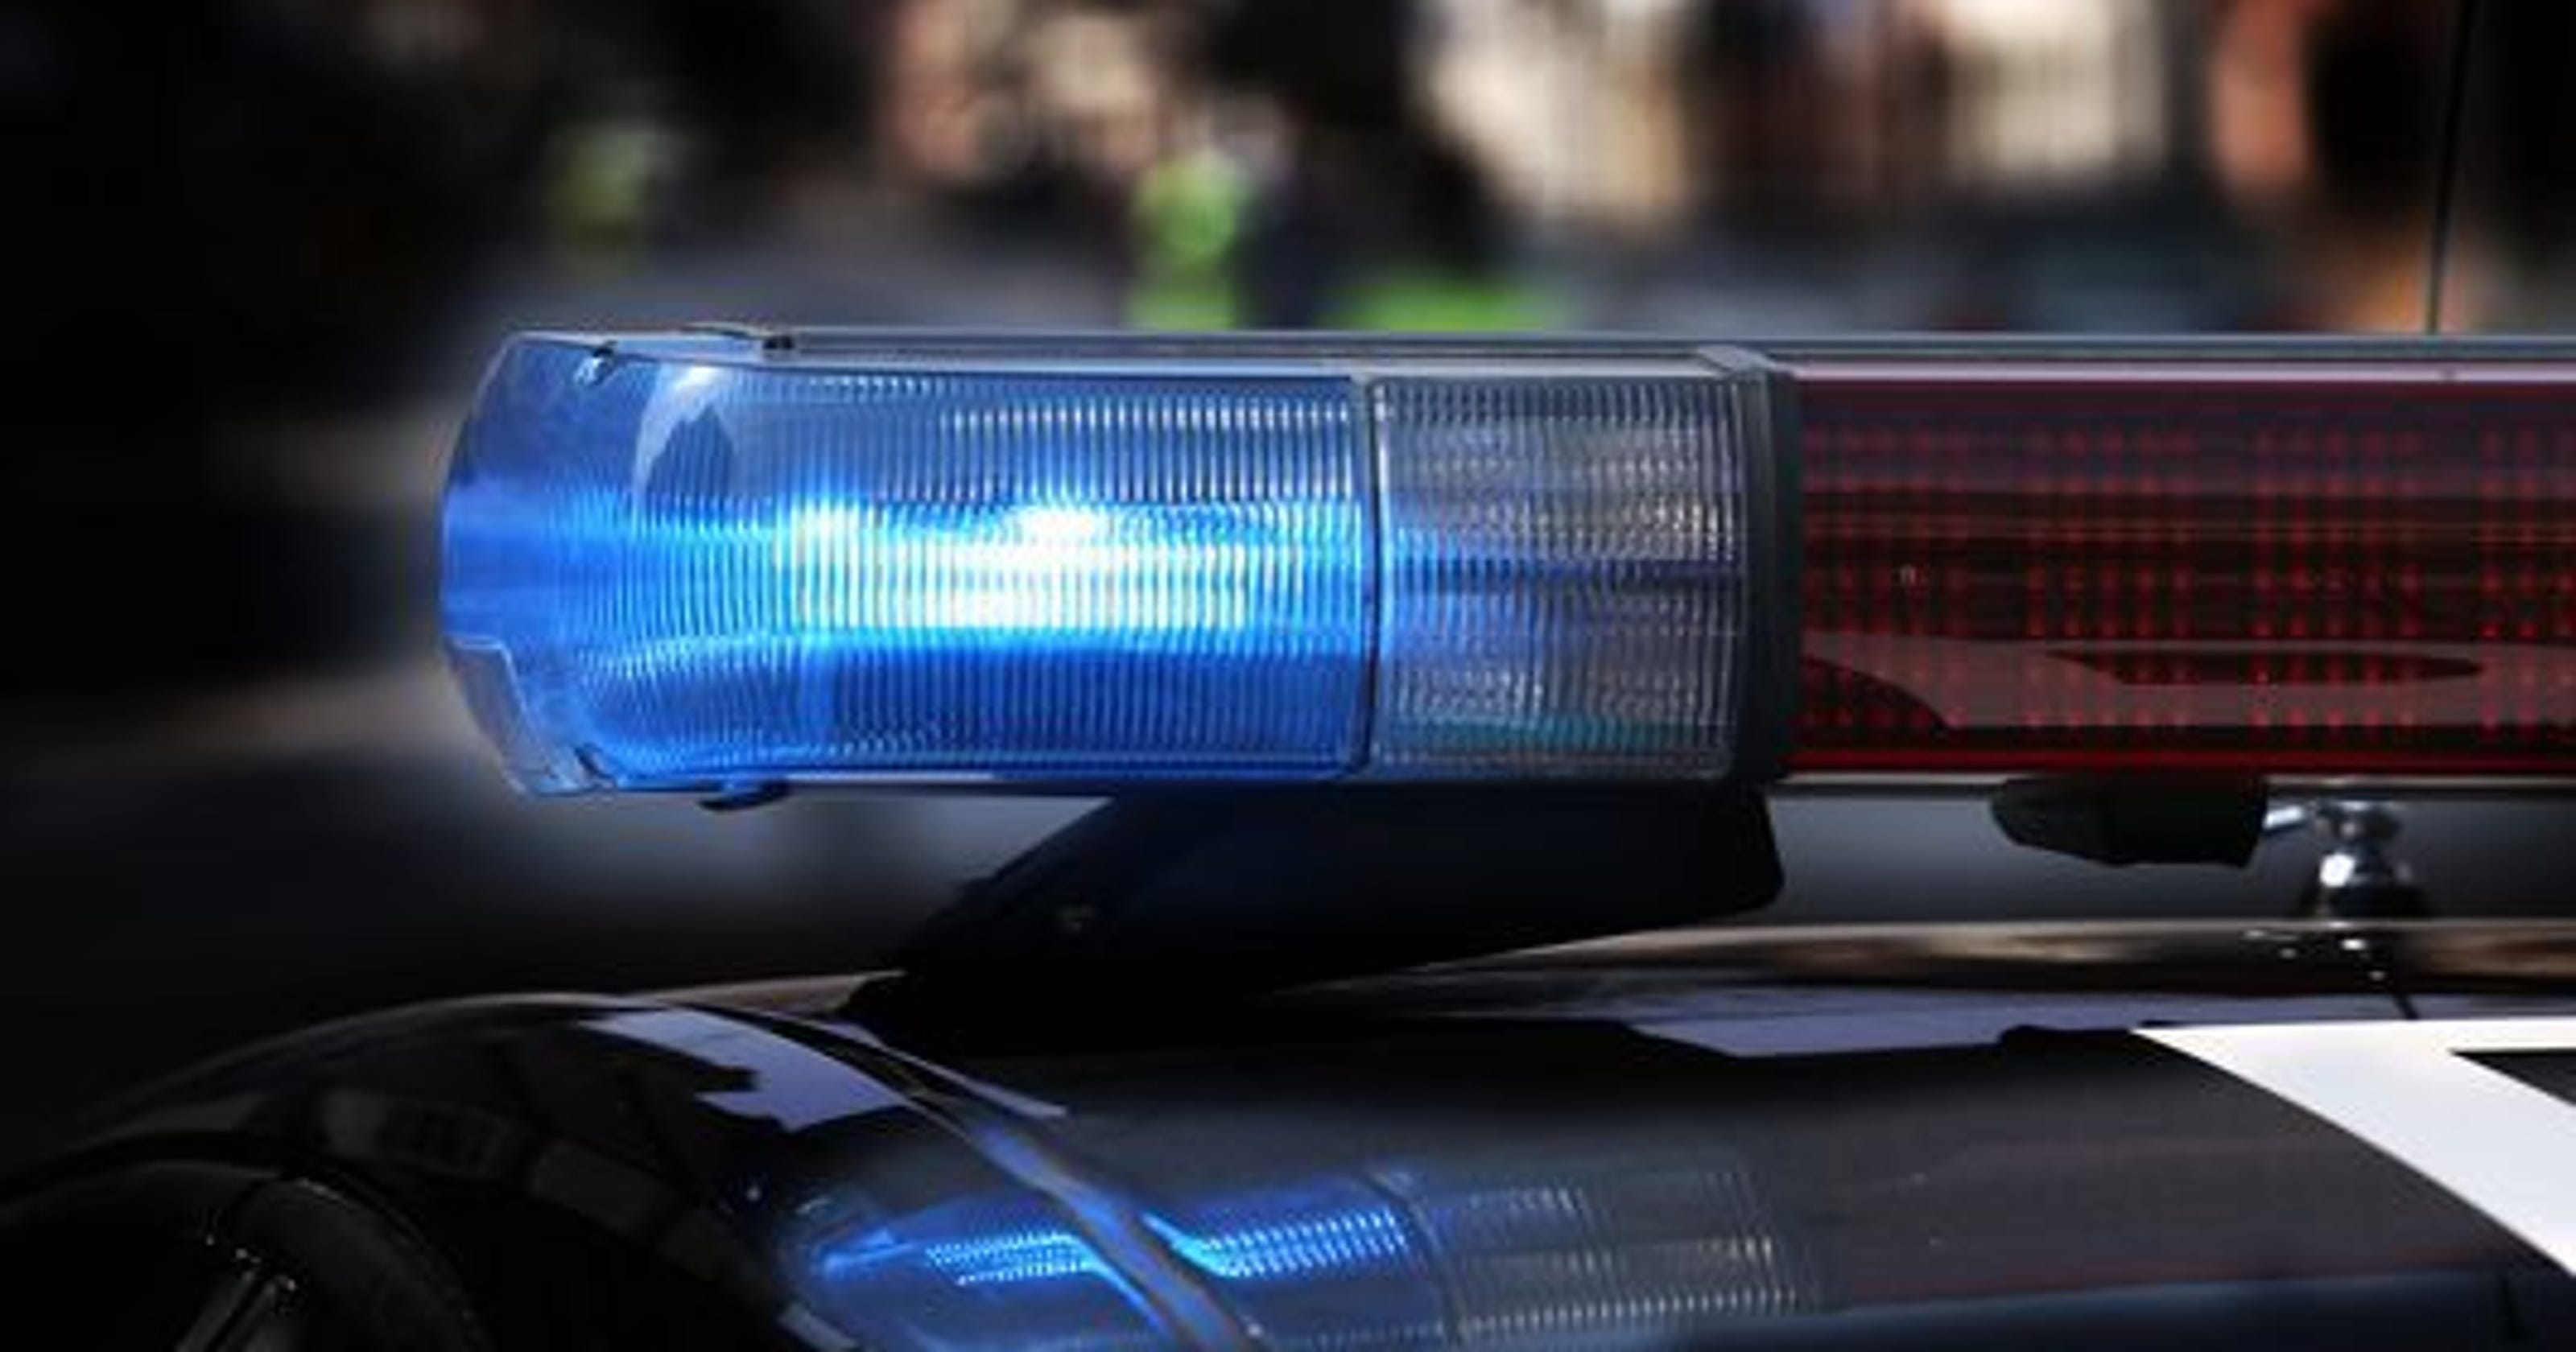 New online tool makes it easier to see crime activity in Detroit